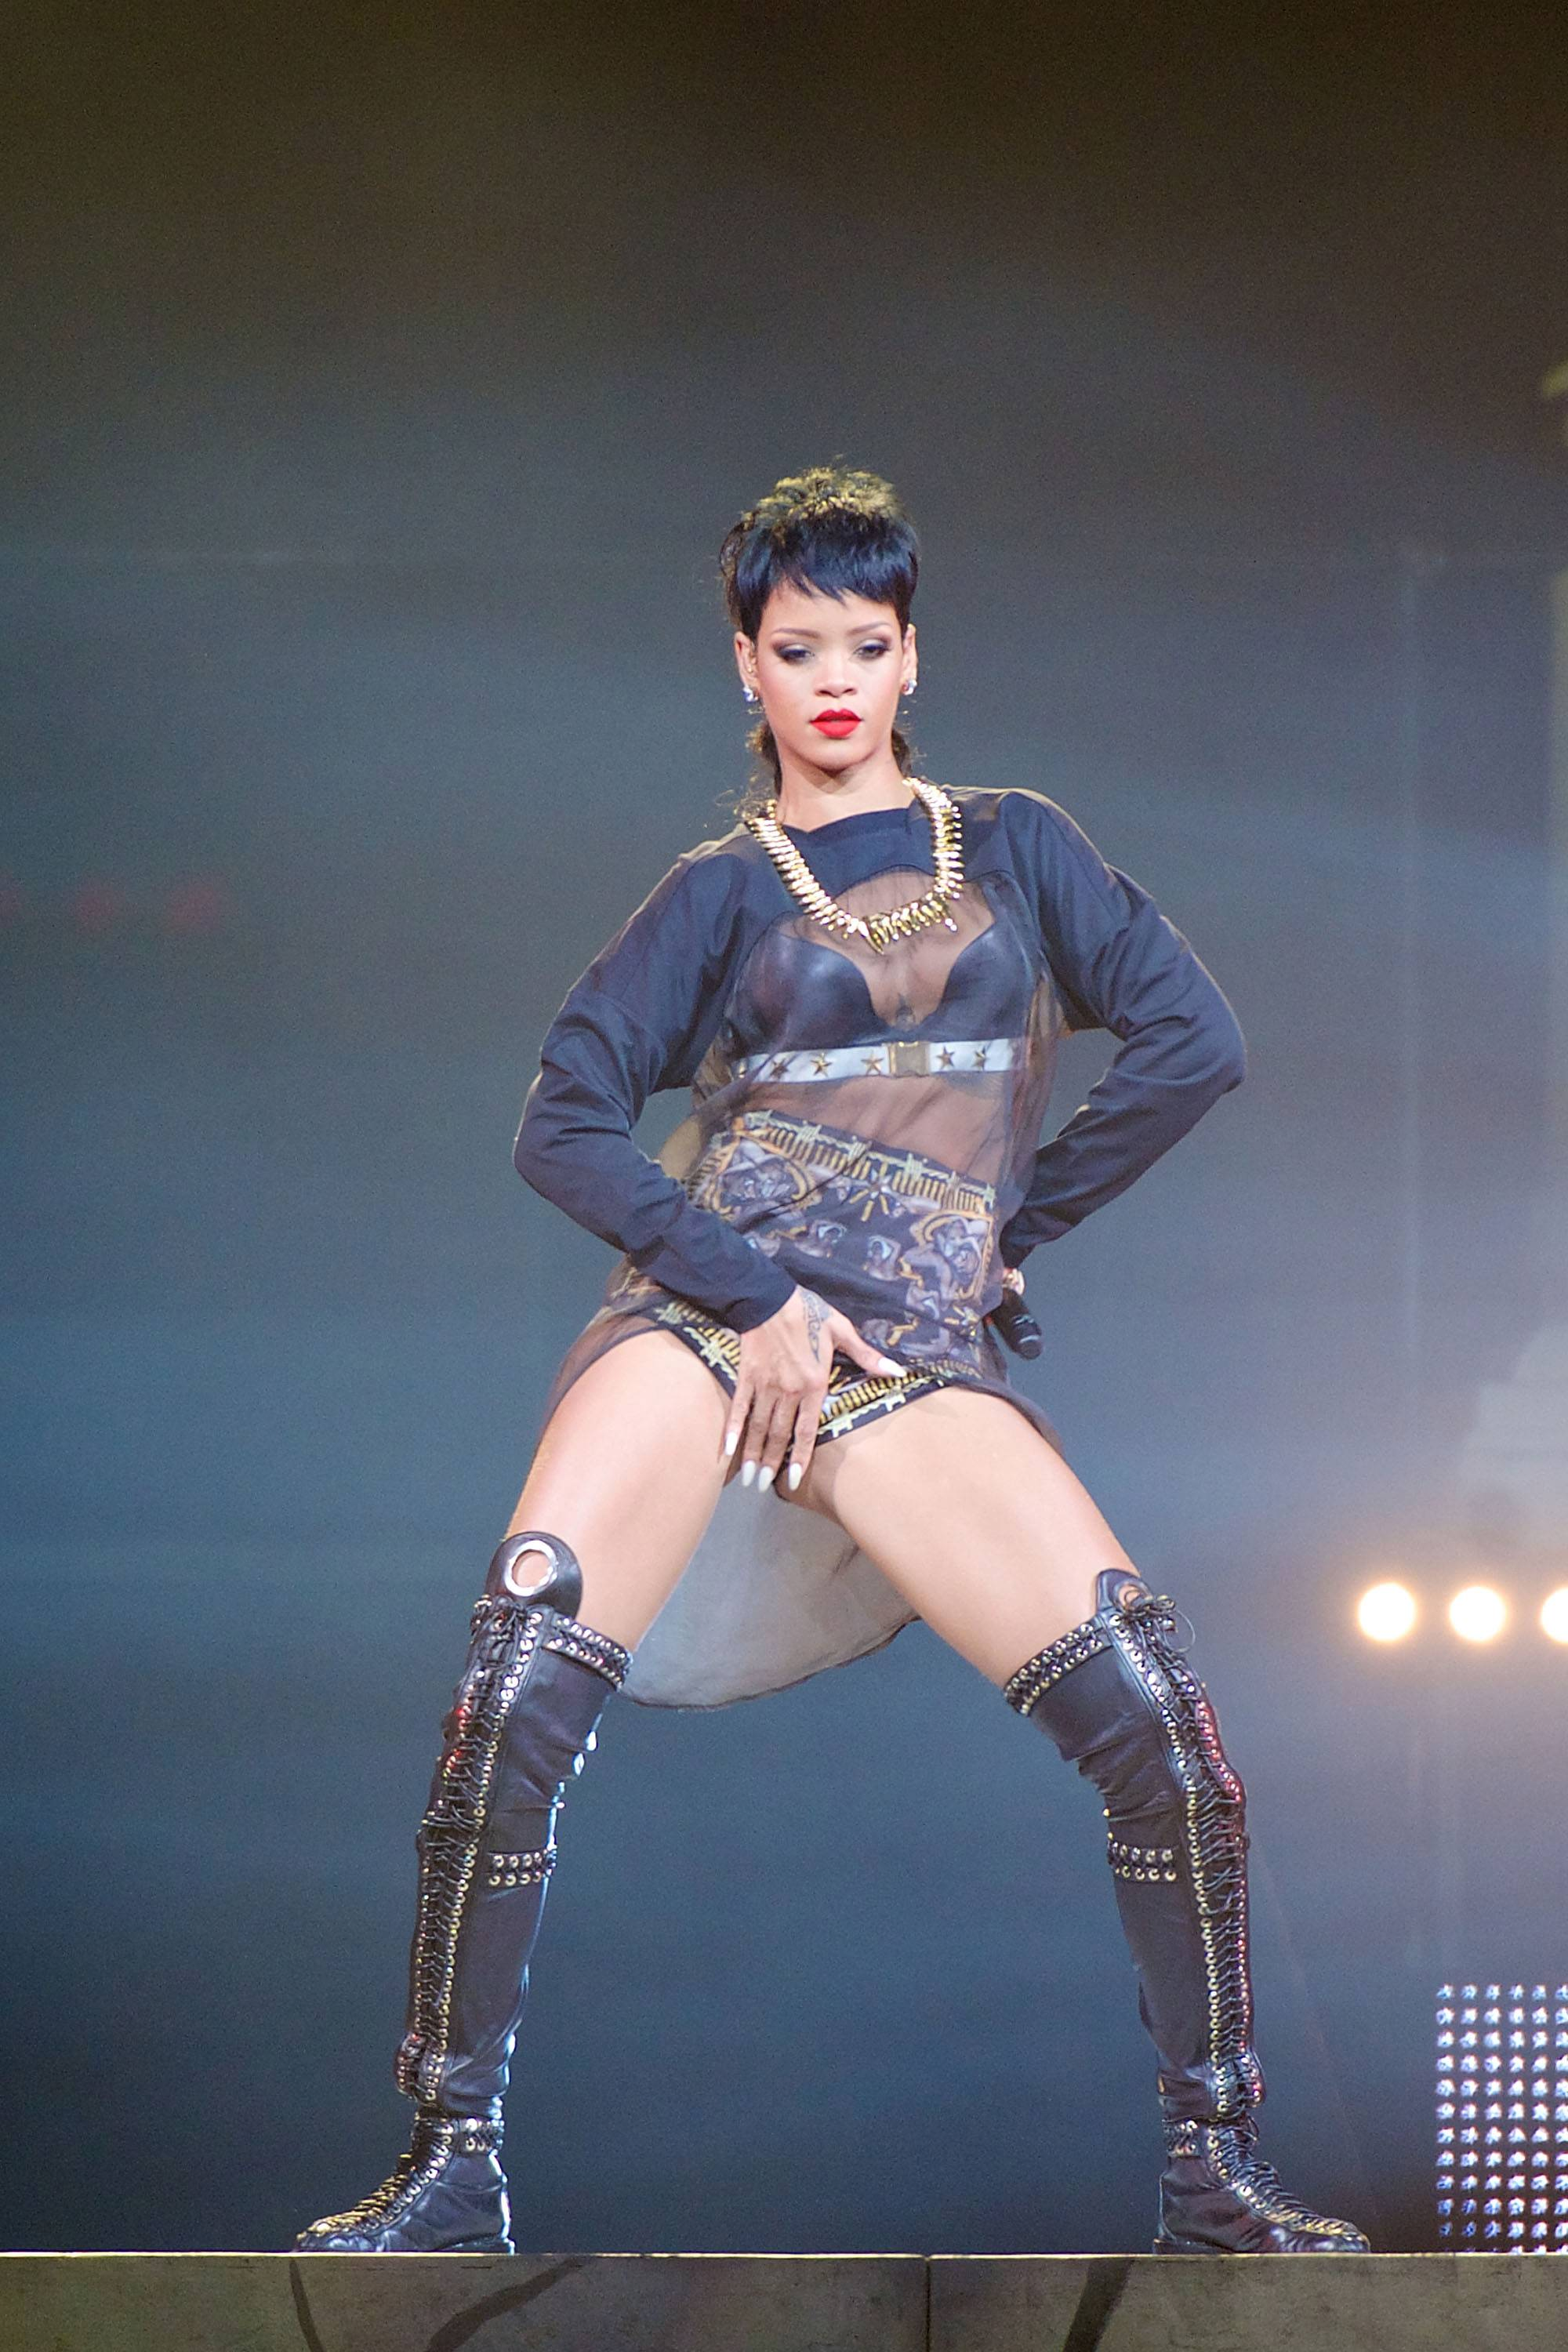 Rihanna,@badgalriri - Rihannamay have been shy about giving the most on that surfboard, but her fans are certainly used to her not holding back when she performs, like in this snapshot she pulled from a show in Australia.(Photo: Stefan Gosatti/Getty Images)